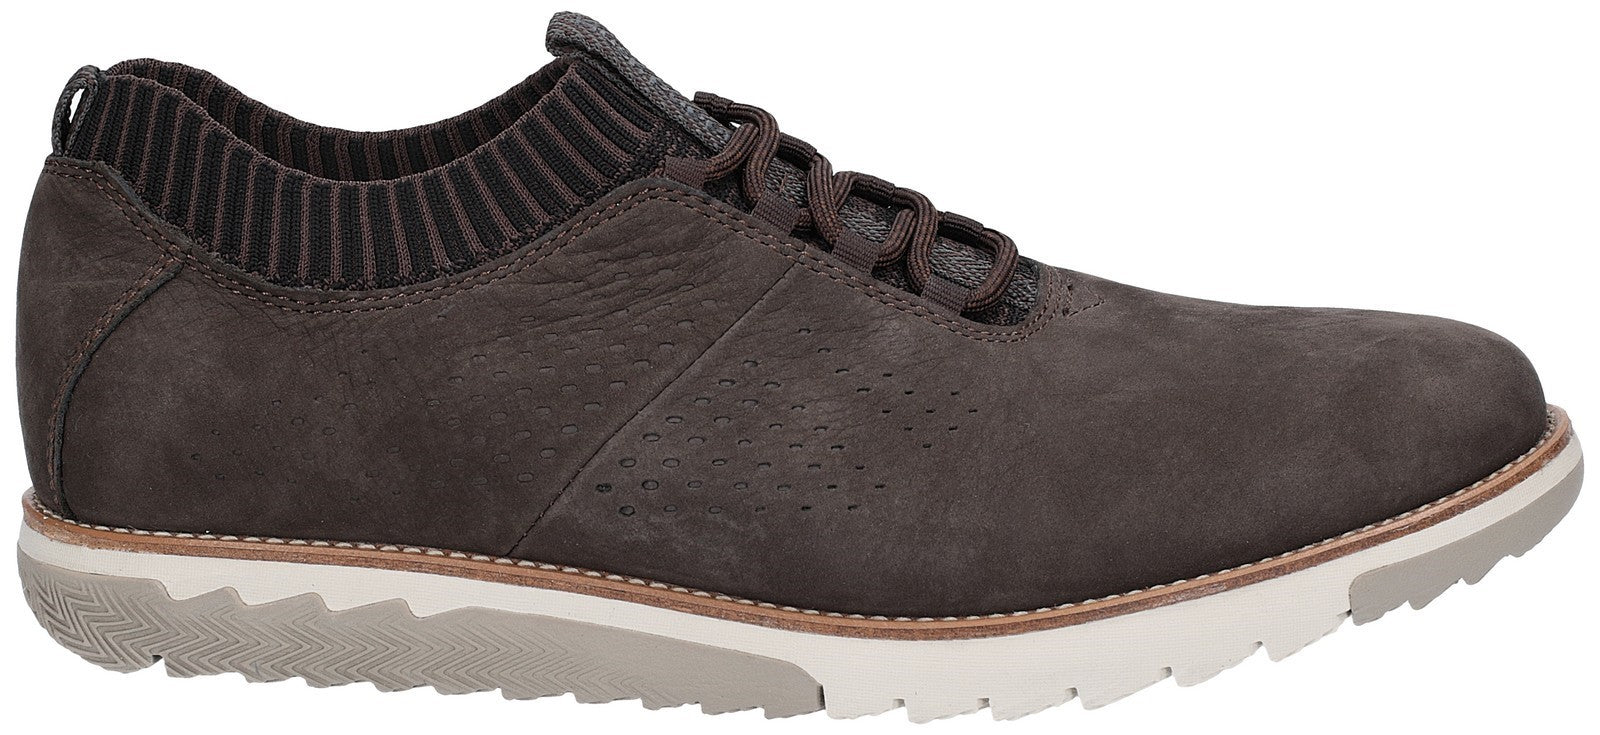 Hush Puppies Men's Expert Knit Oxford Lace Up Trainer Various Colours 27360